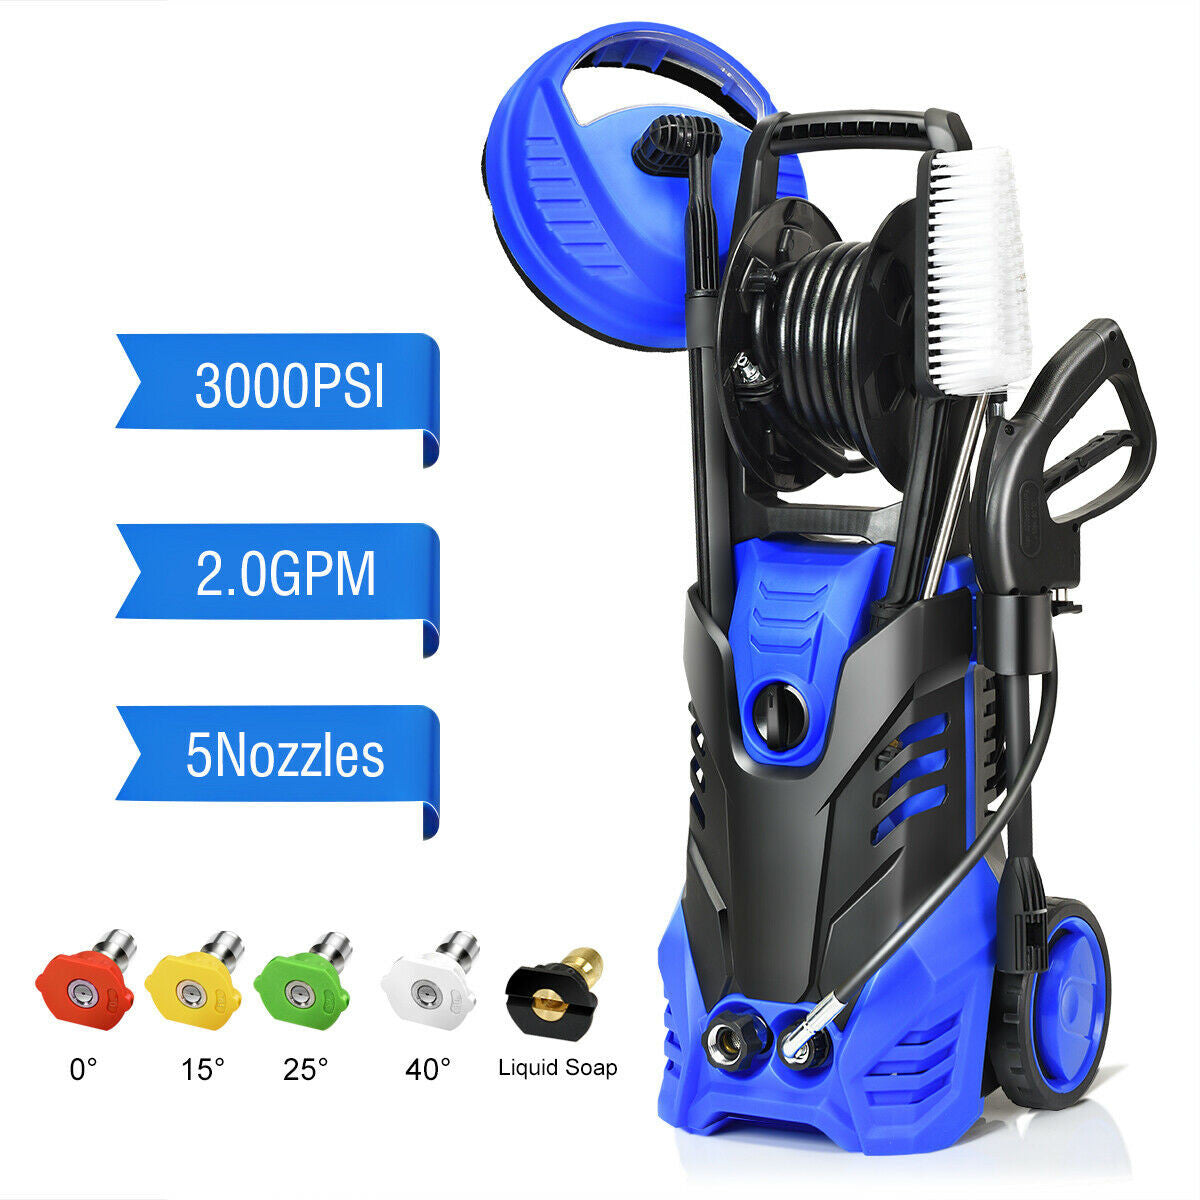 3000 PSI Portable Electric High Pressure Water Power Washer With Patio Cleaner